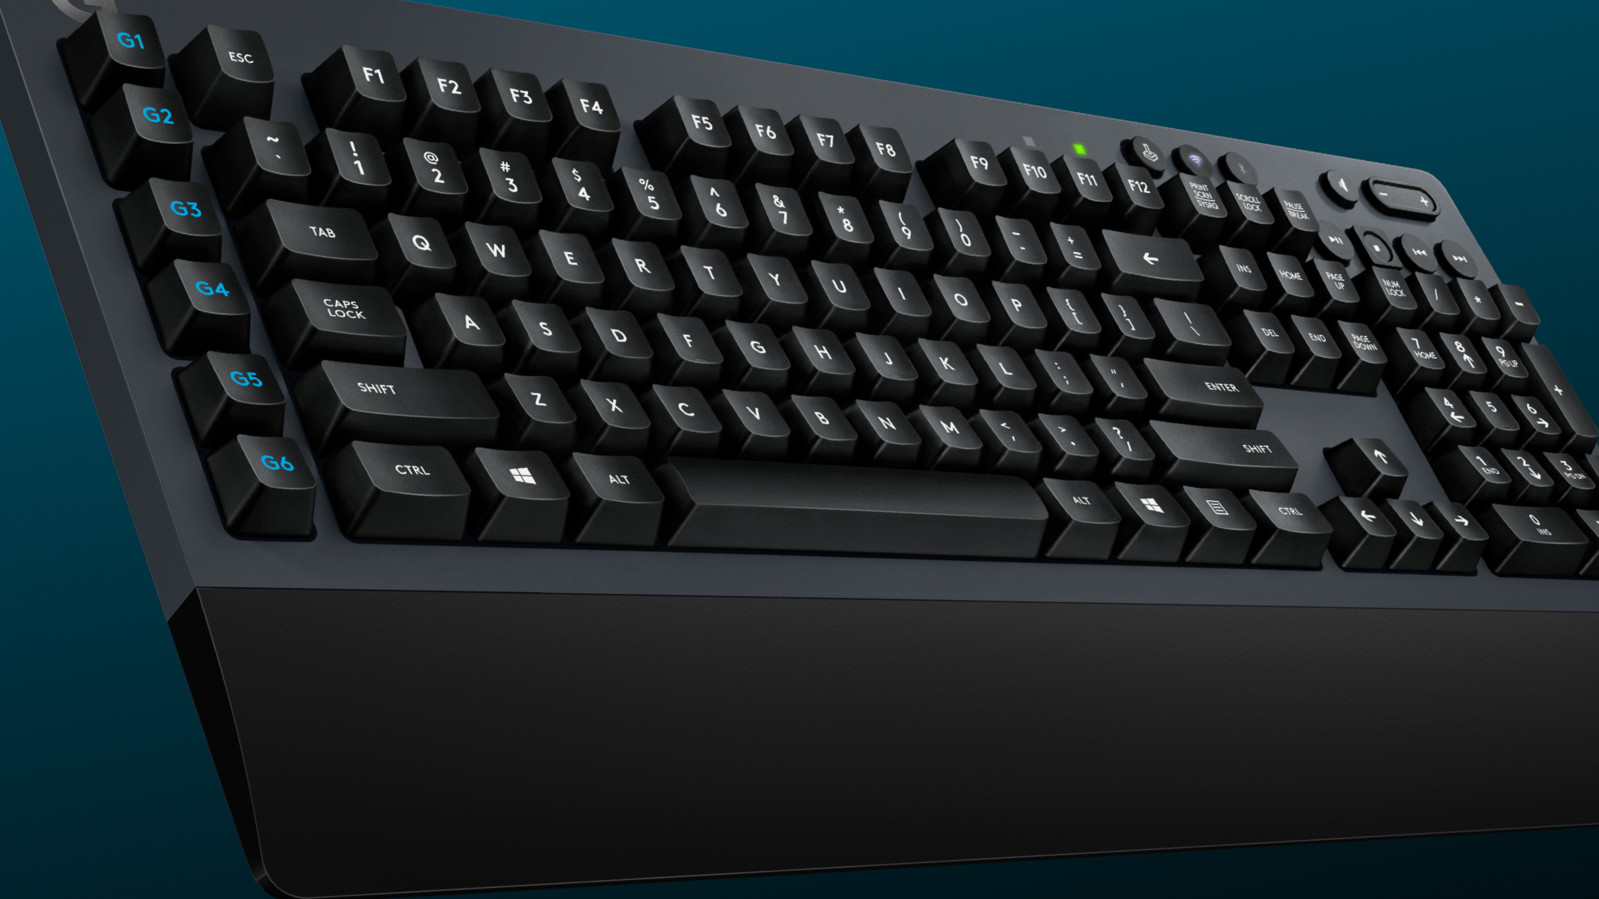 42f3129aa84 Best wireless gaming keyboard in 2019 | PC Gamer